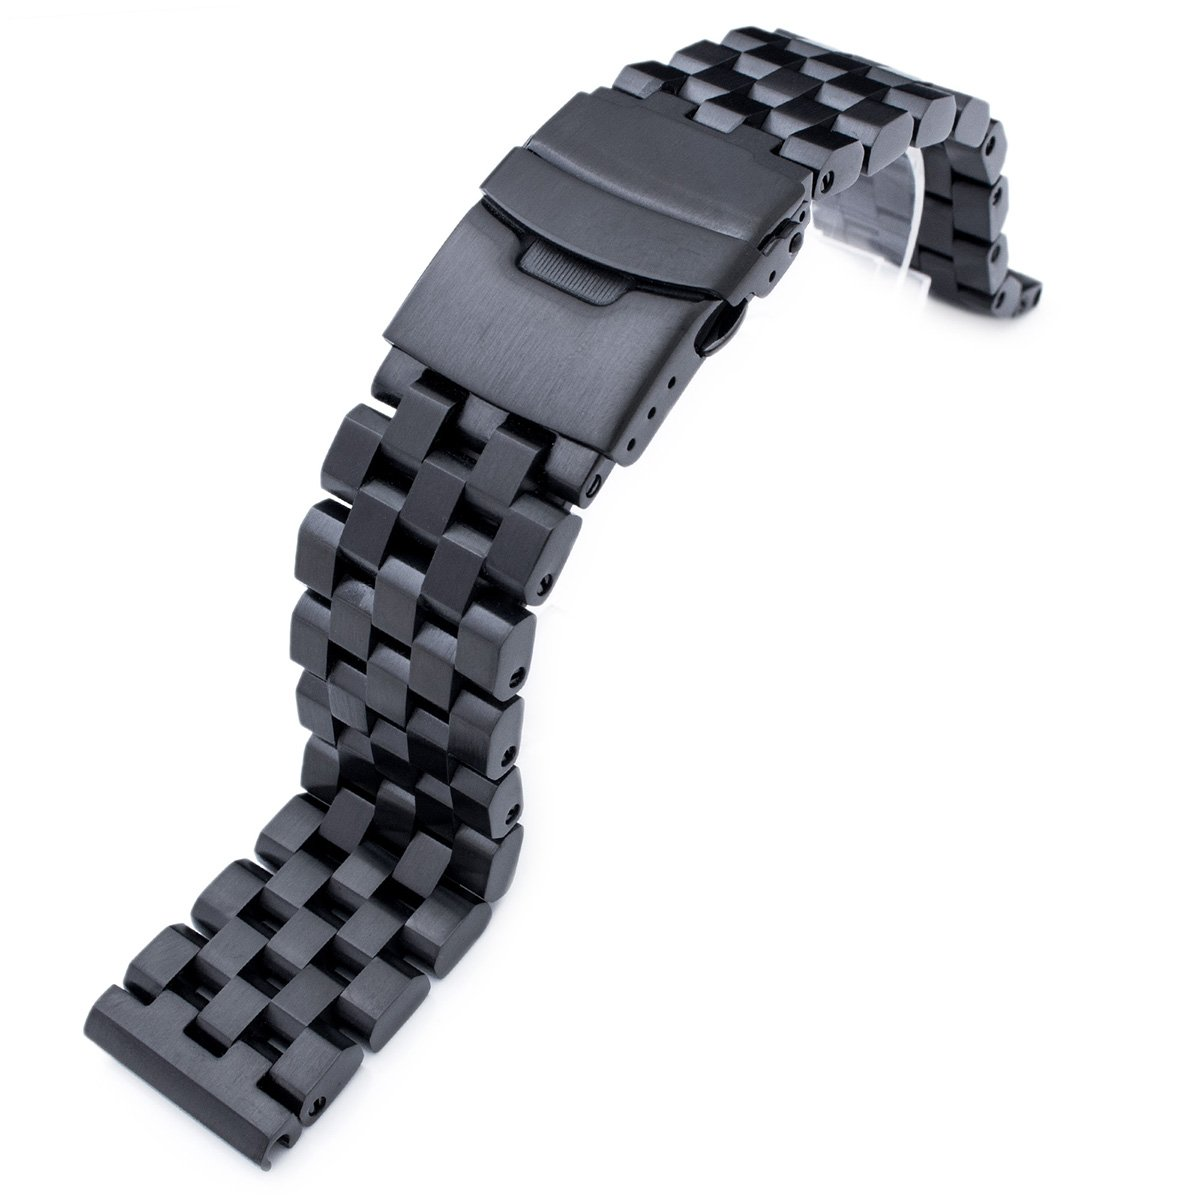 22mm SUPER Engineer Type II Solid Stainless Steel Watch Band